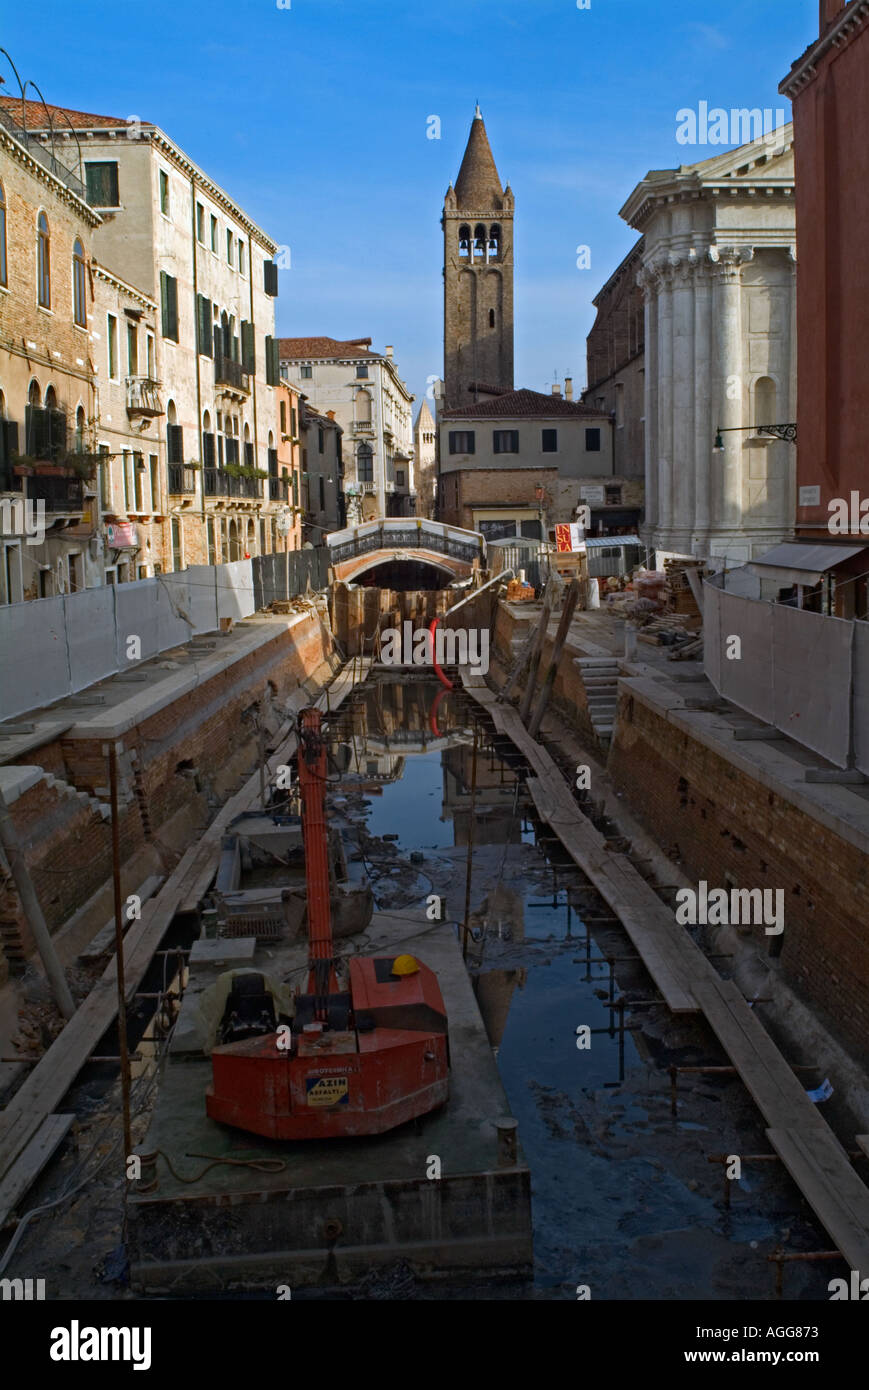 A drained canal undergoing repair in the Dorsoduro district of Venice Veneto Italy - Stock Image